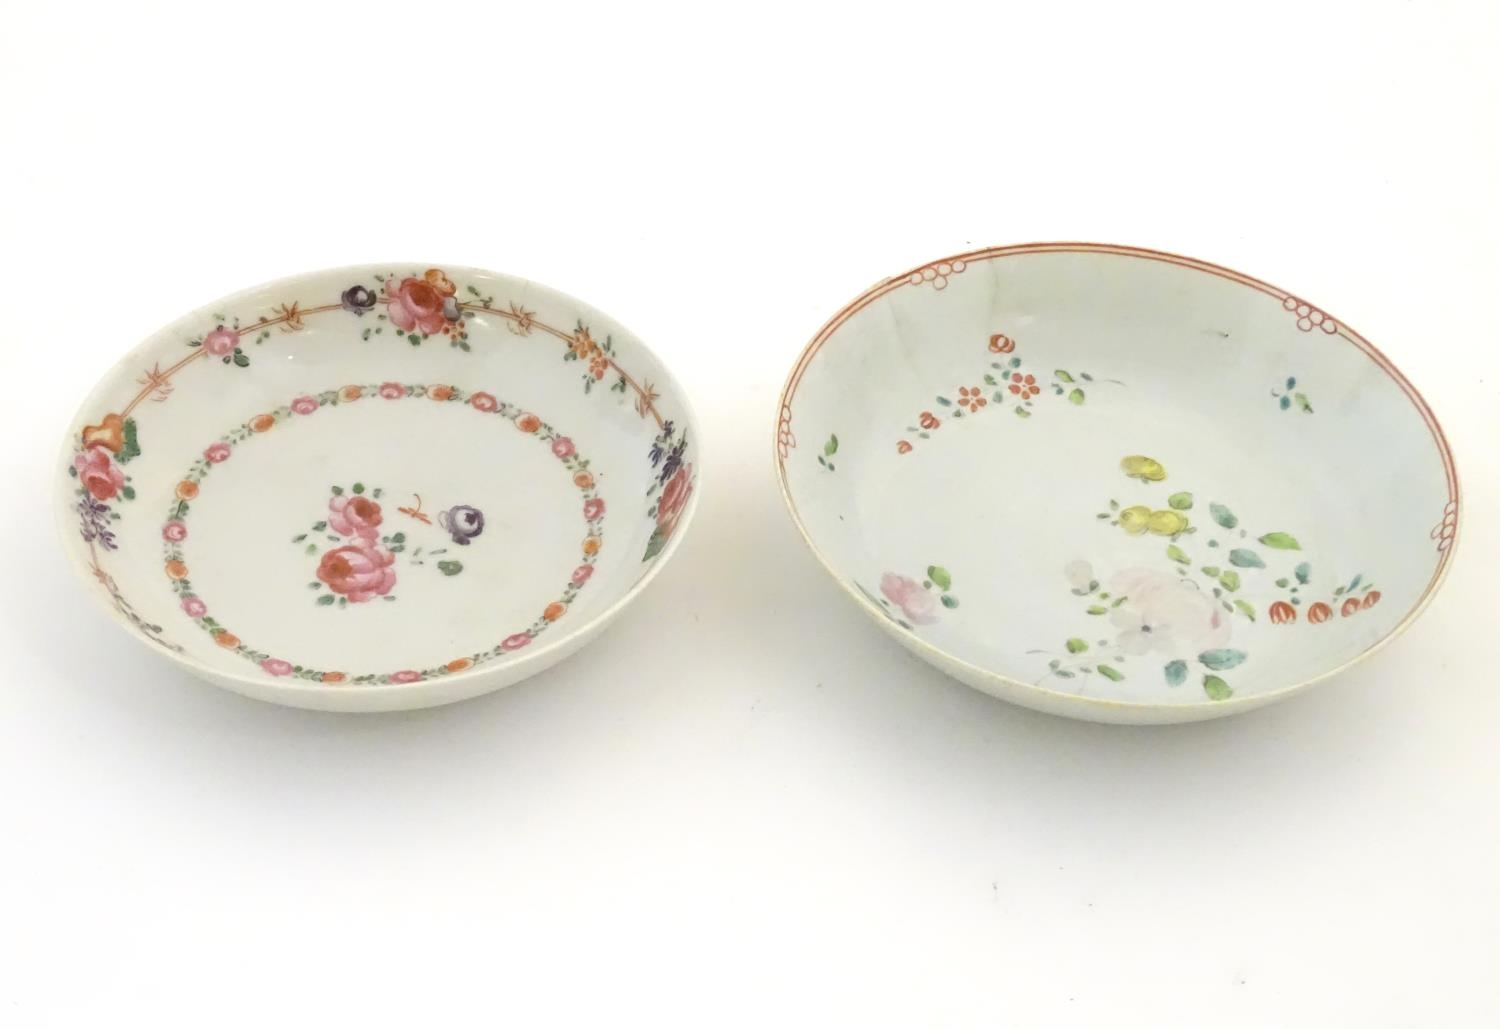 A New Hall style saucer with hand painted floral and foliate detail. Together with another. - Image 7 of 18